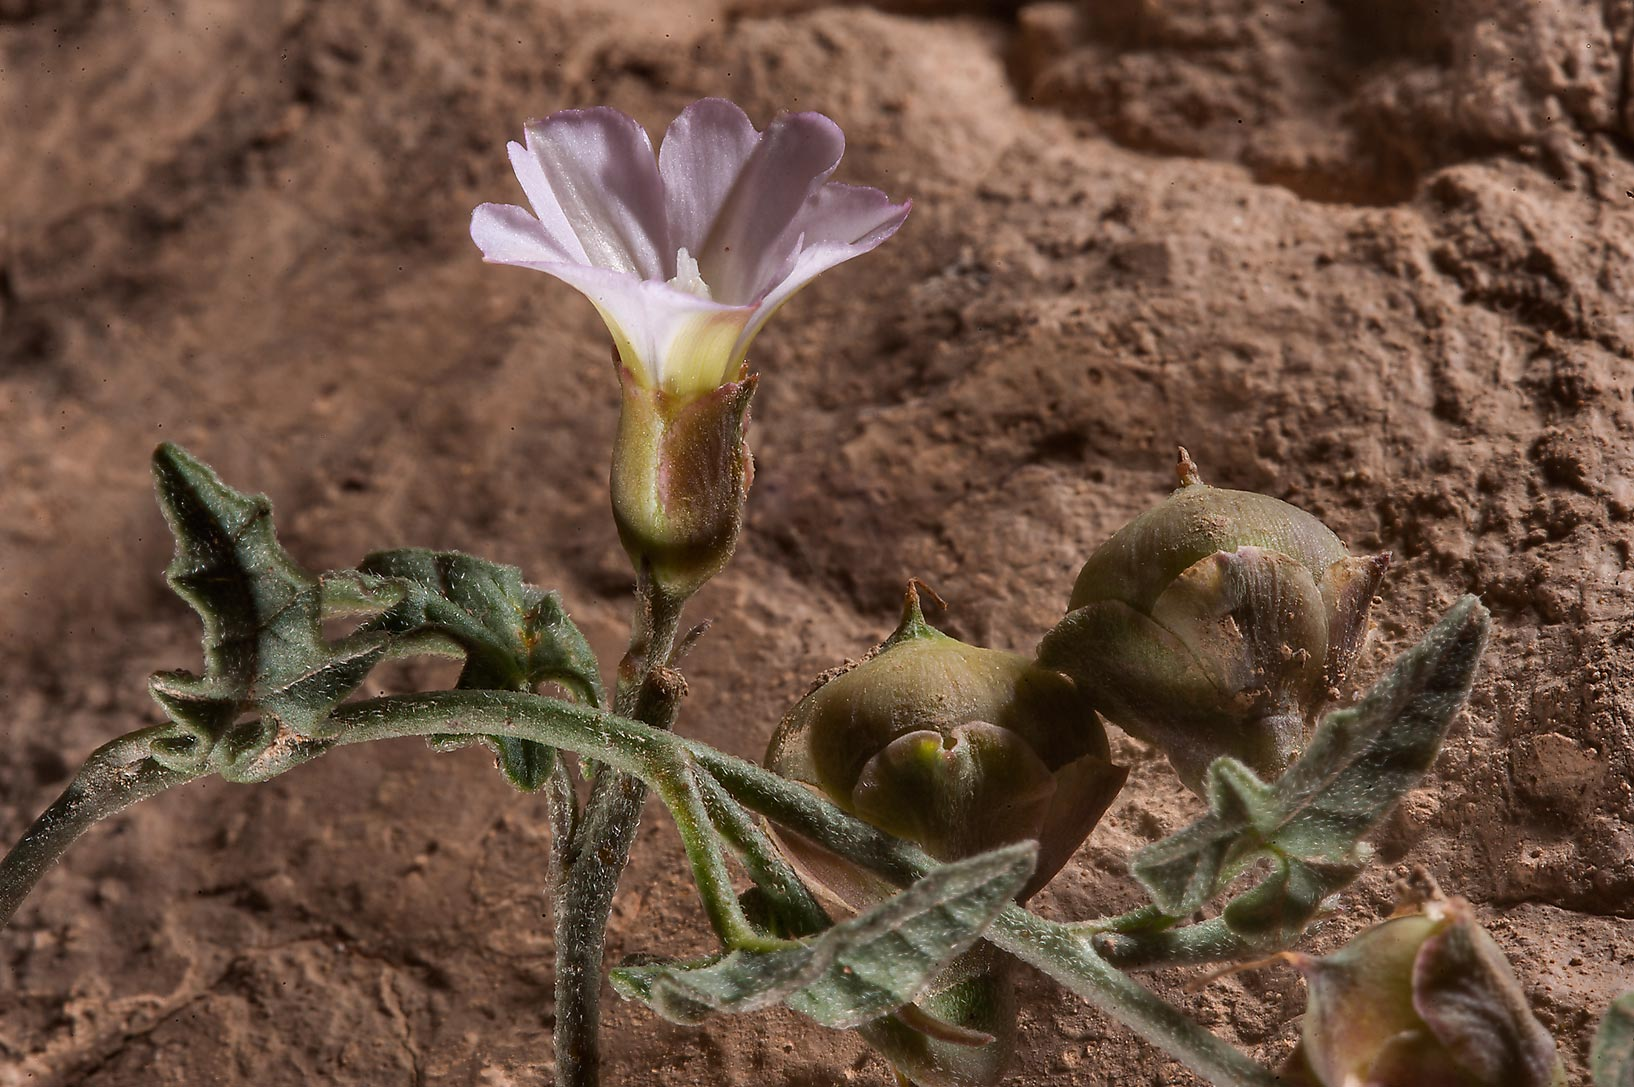 Flower and fruits of bindweed Convolvulus...Nuaimiya) near Zubara. Northern Qatar